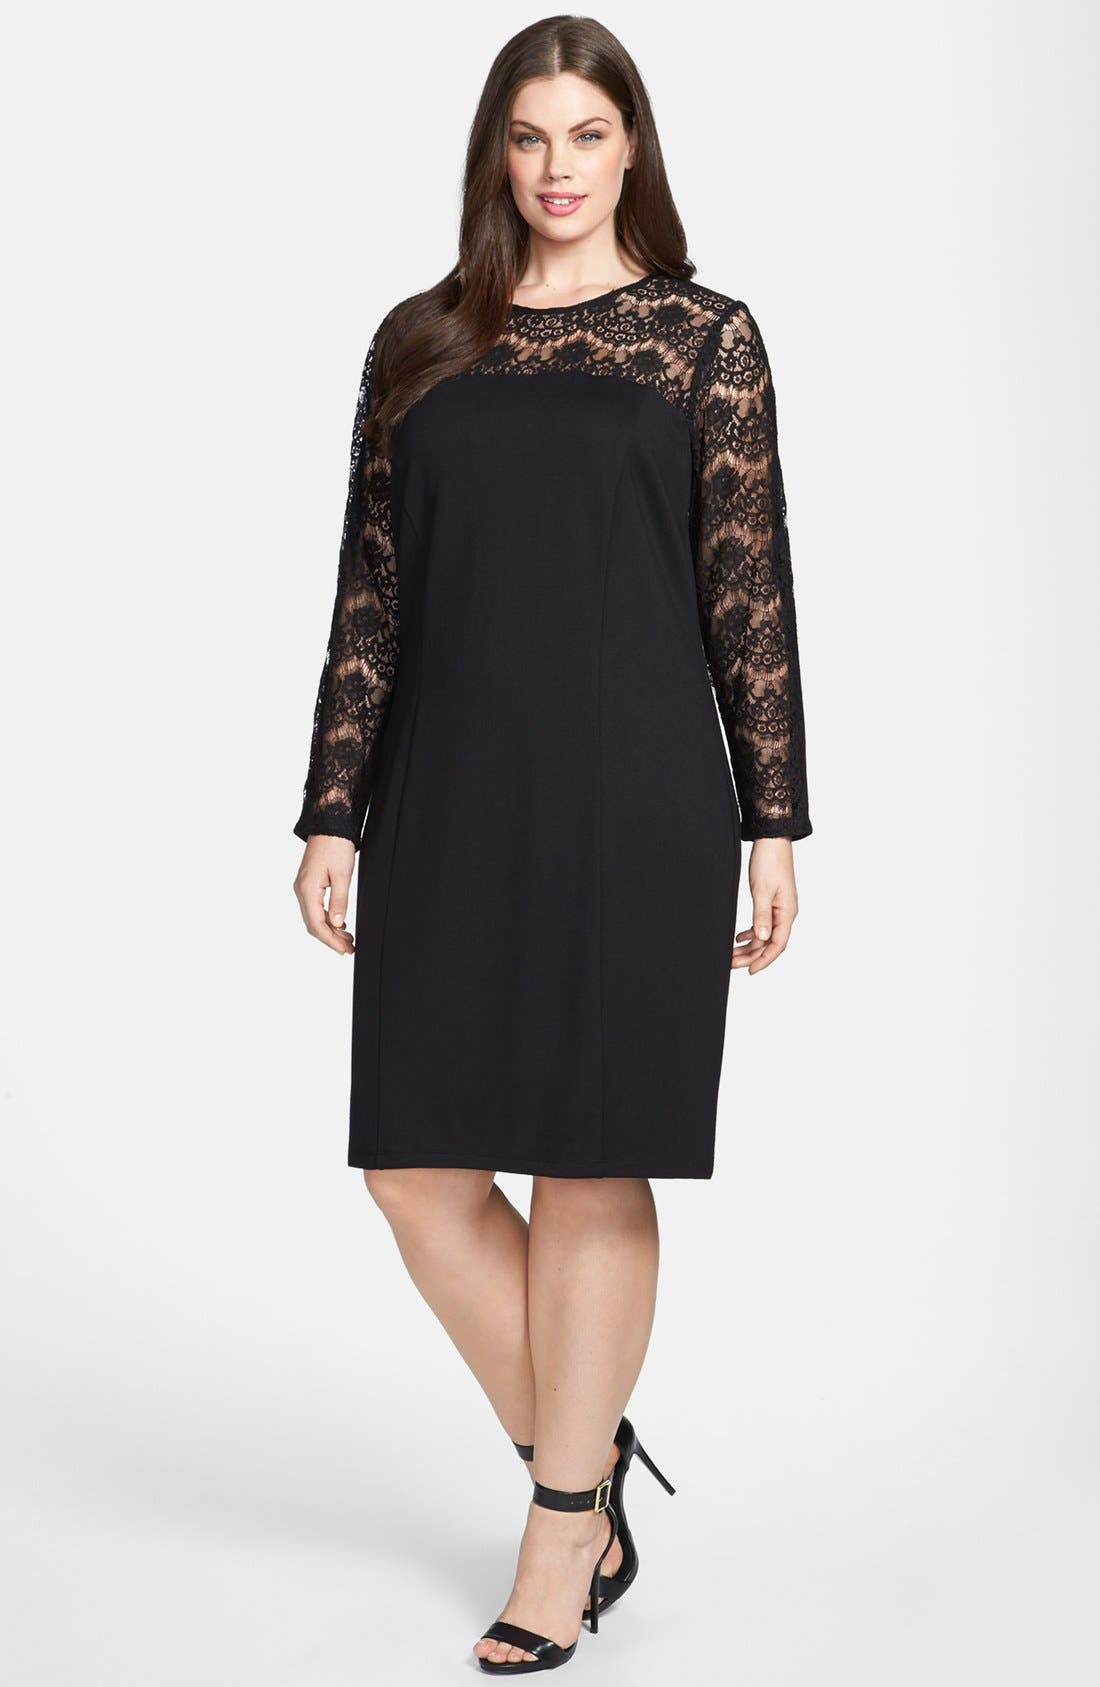 Alternate Image 1 Selected - Jessica Simpson Lace Dress (Plus Size)